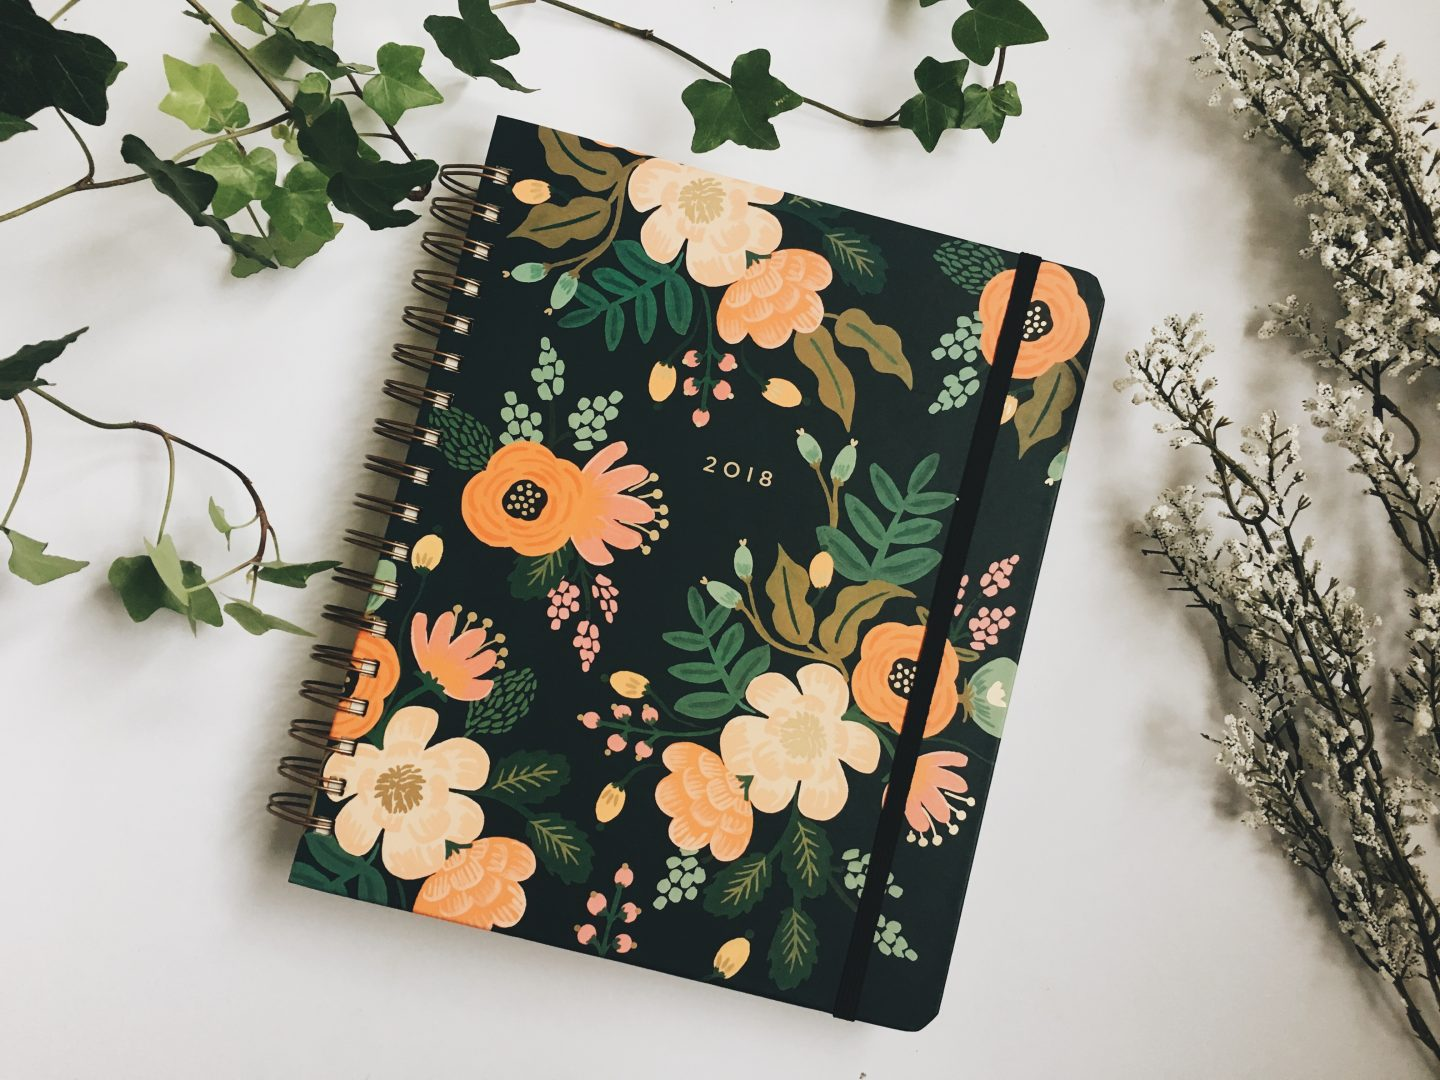 The Best Planner for 2018